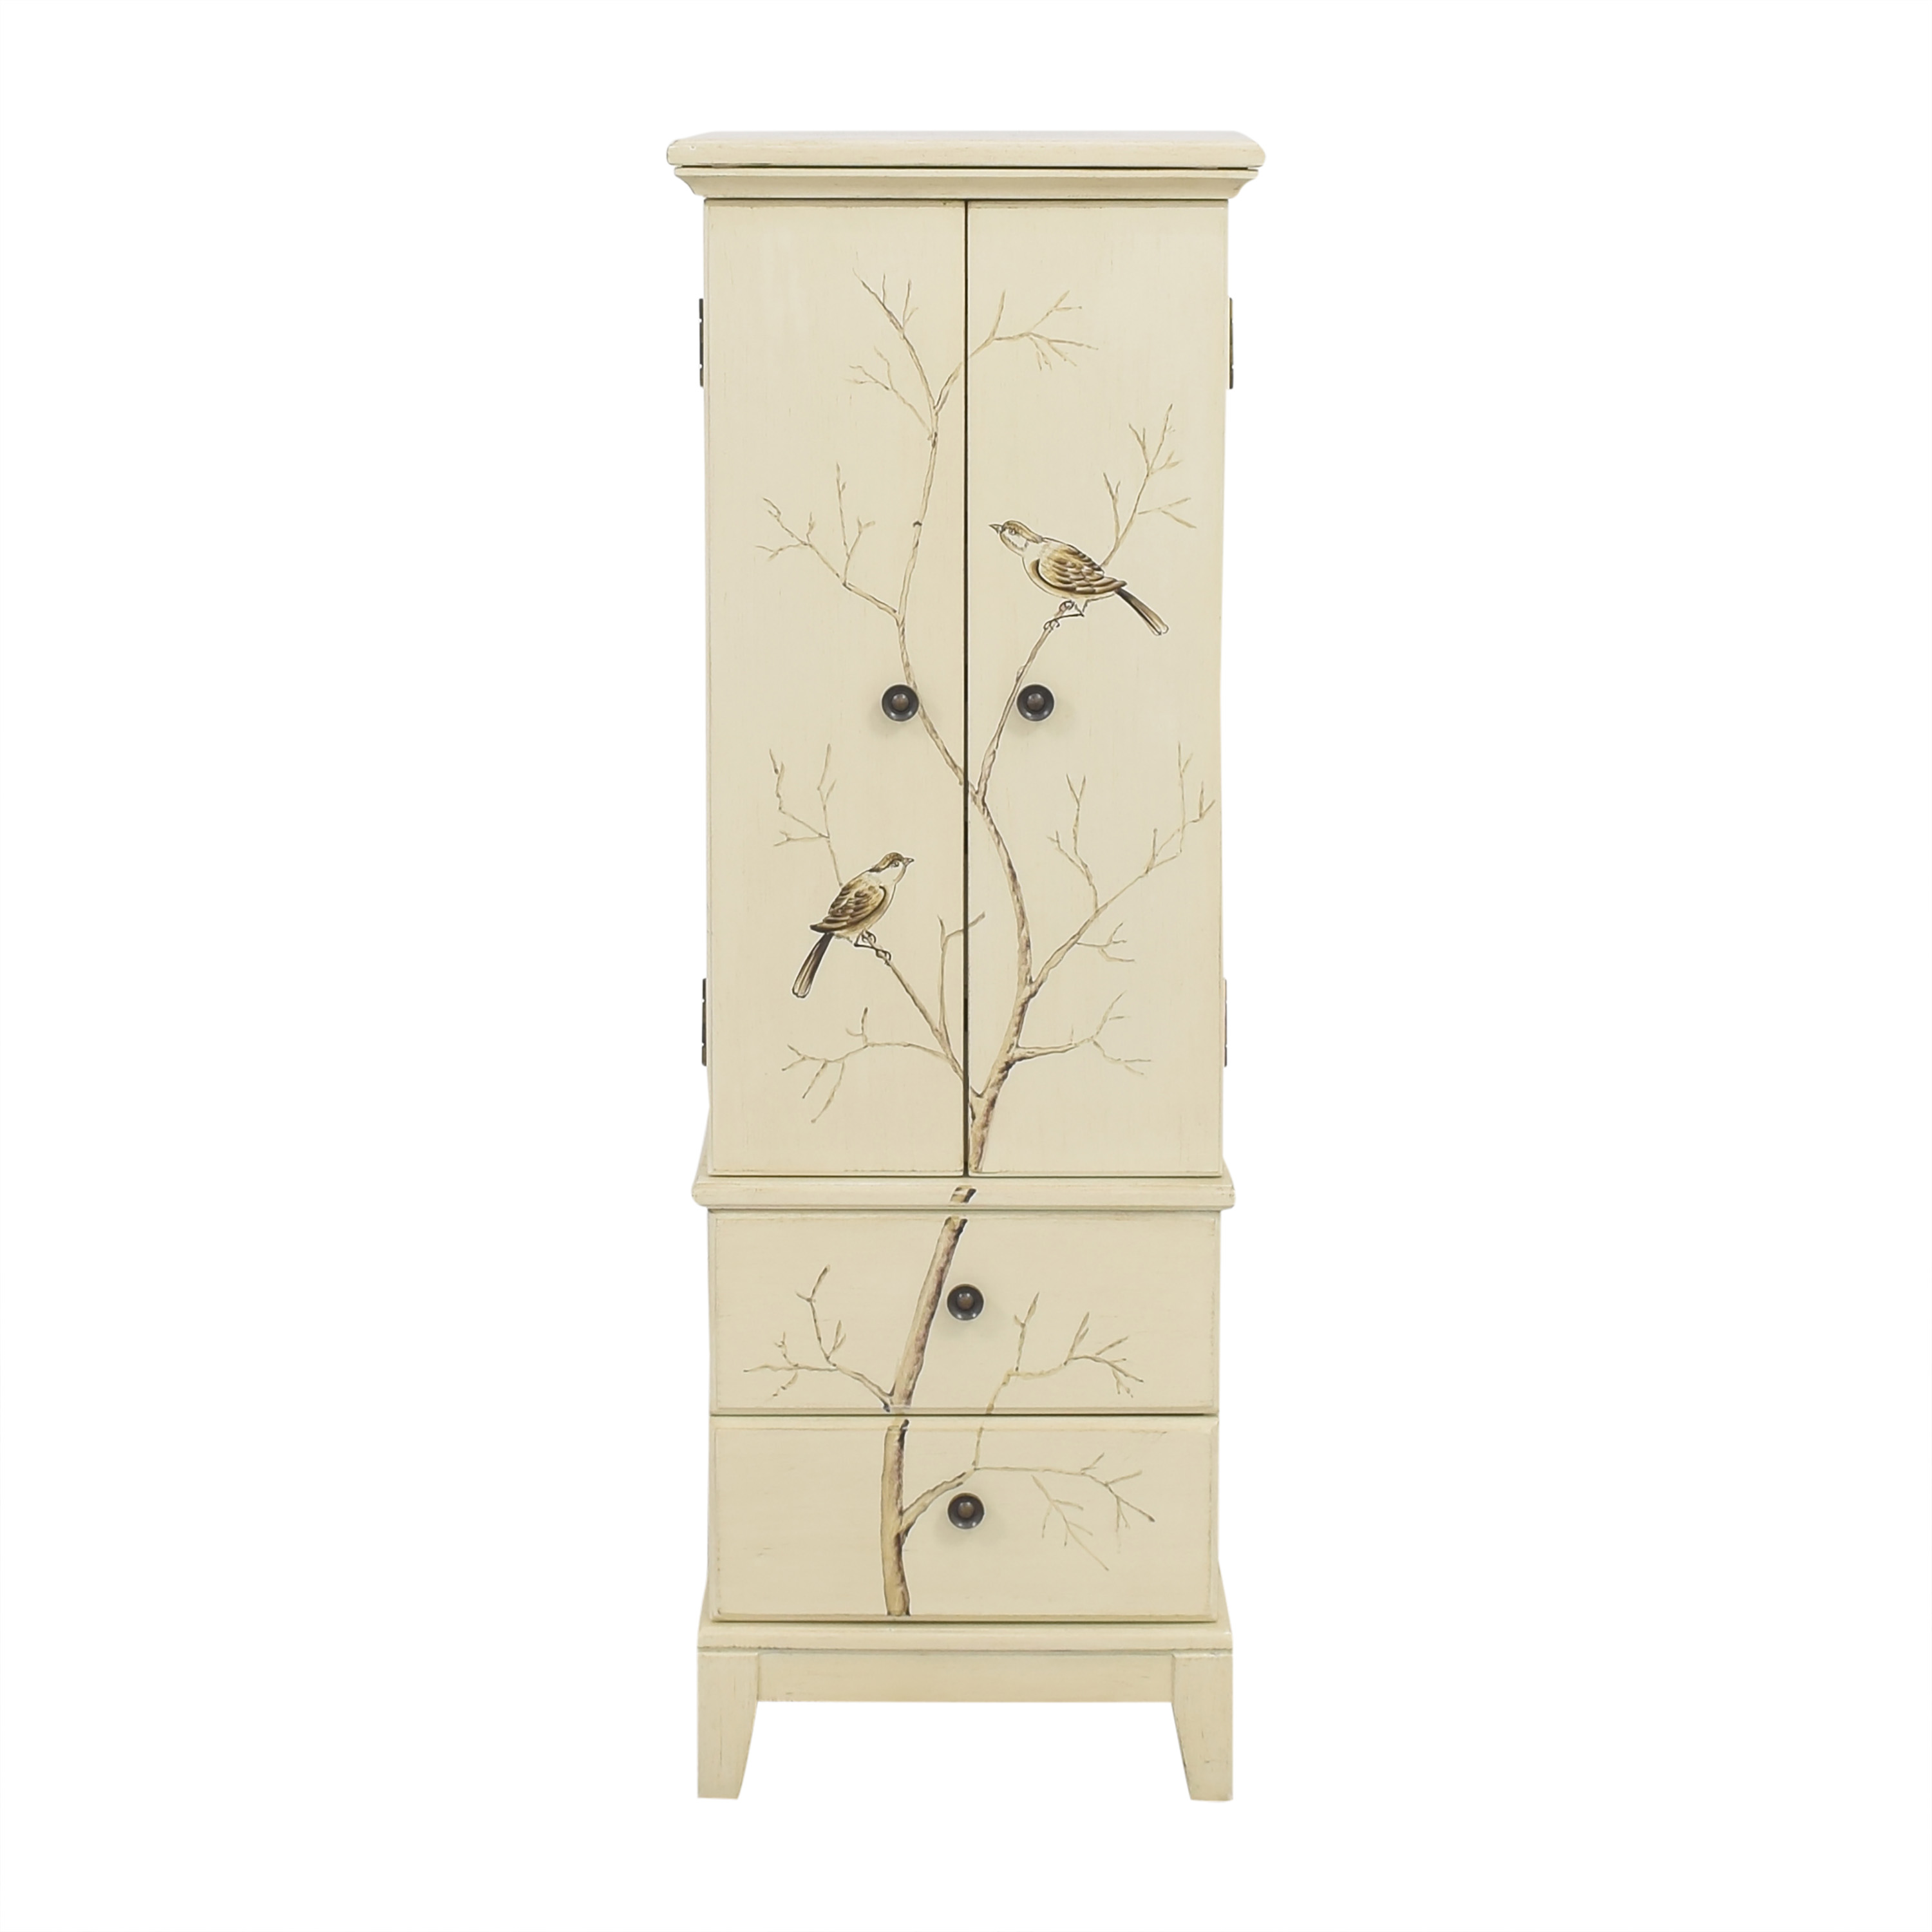 Home Decorators Collection Home Decorators Collection Chirp Jewelry Armoire ma